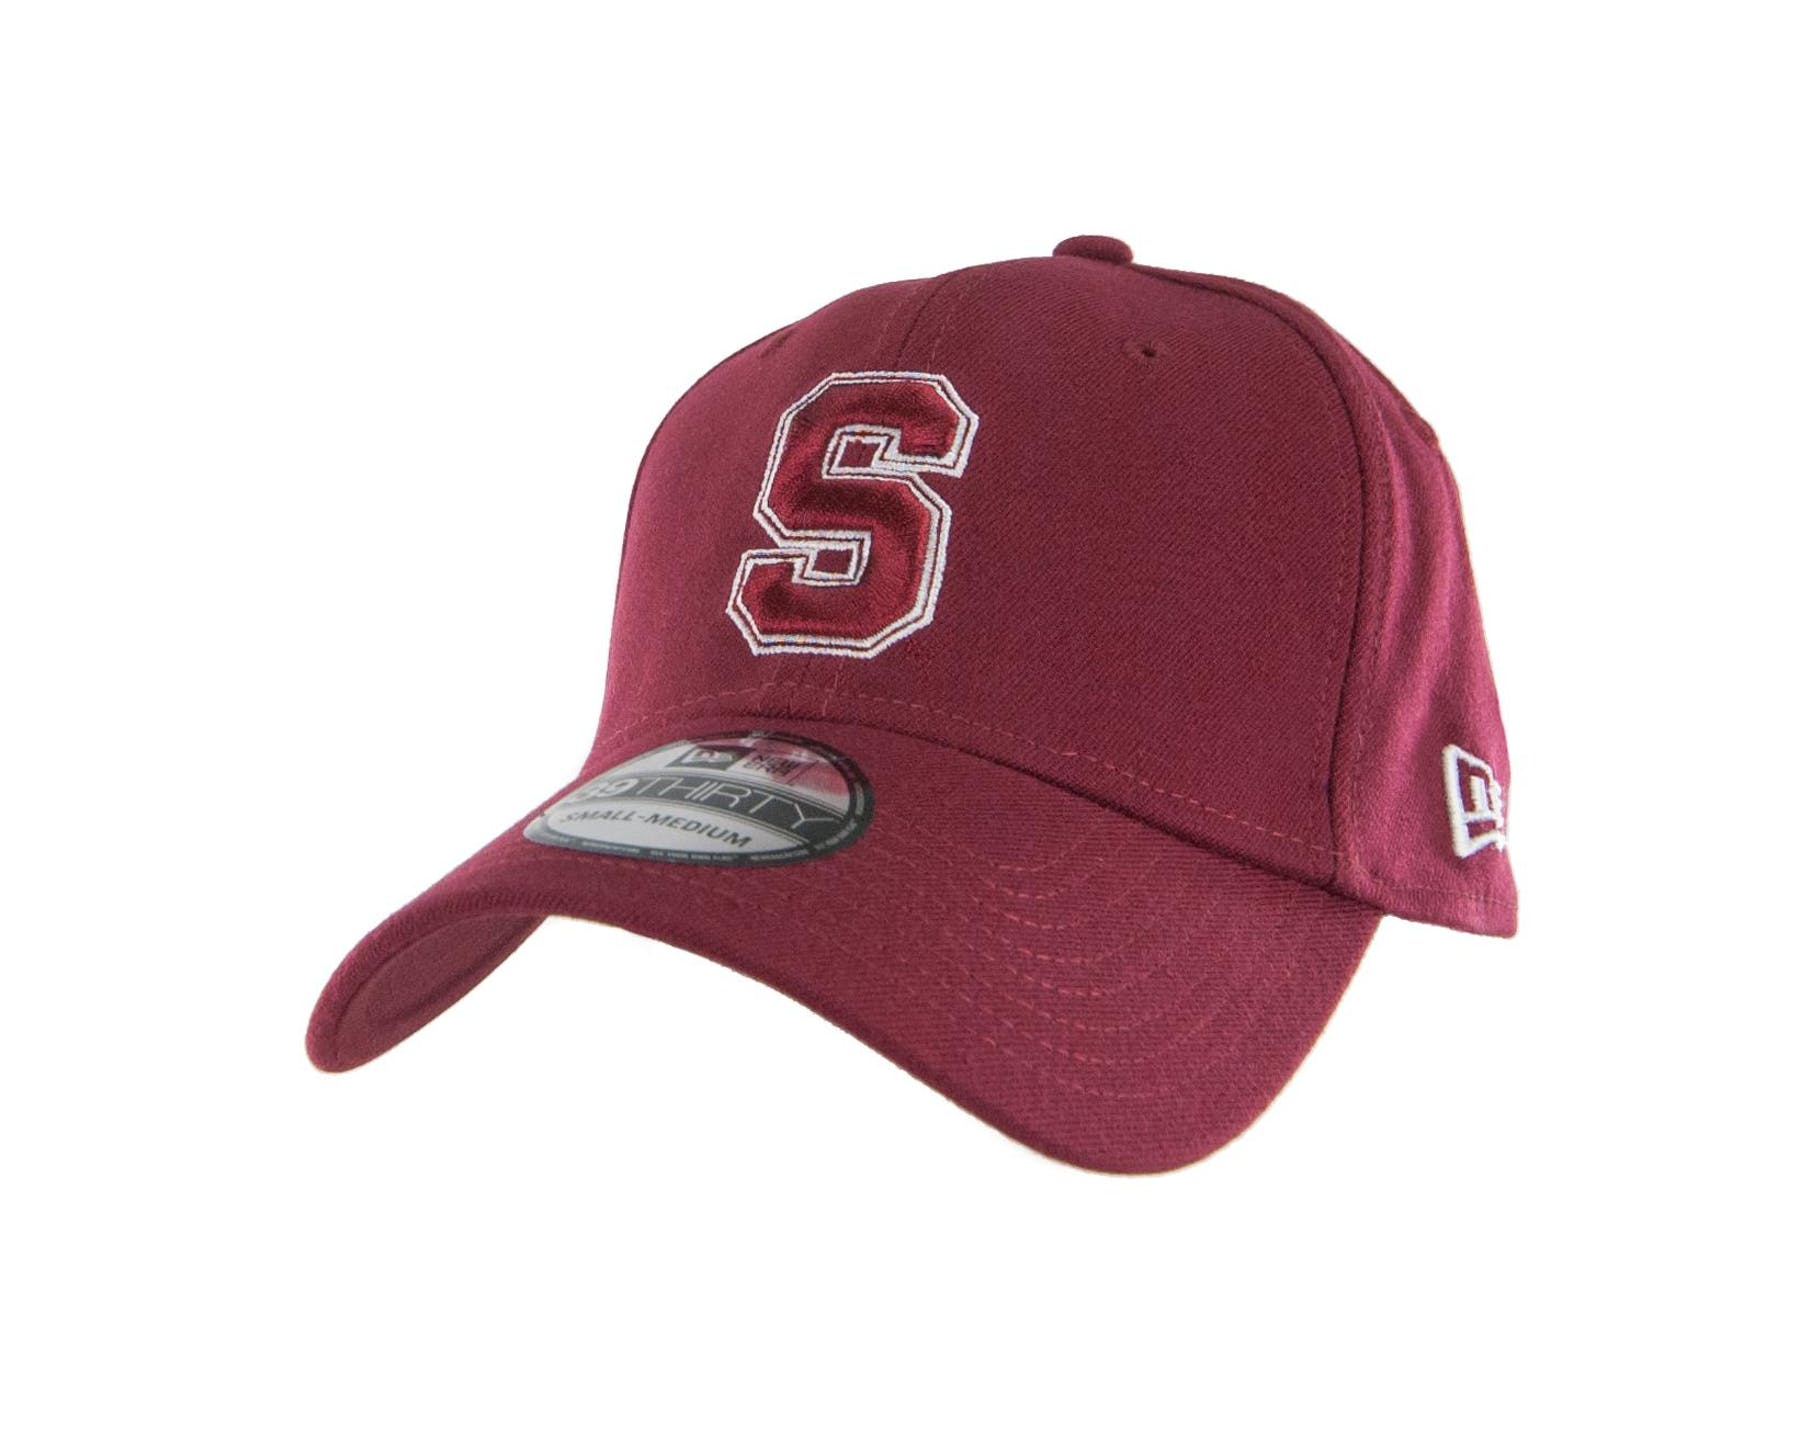 c634f638d3c Stanford Cardinal New Era 39Thirty Team Classic Maroon Flex Fit Hat ...